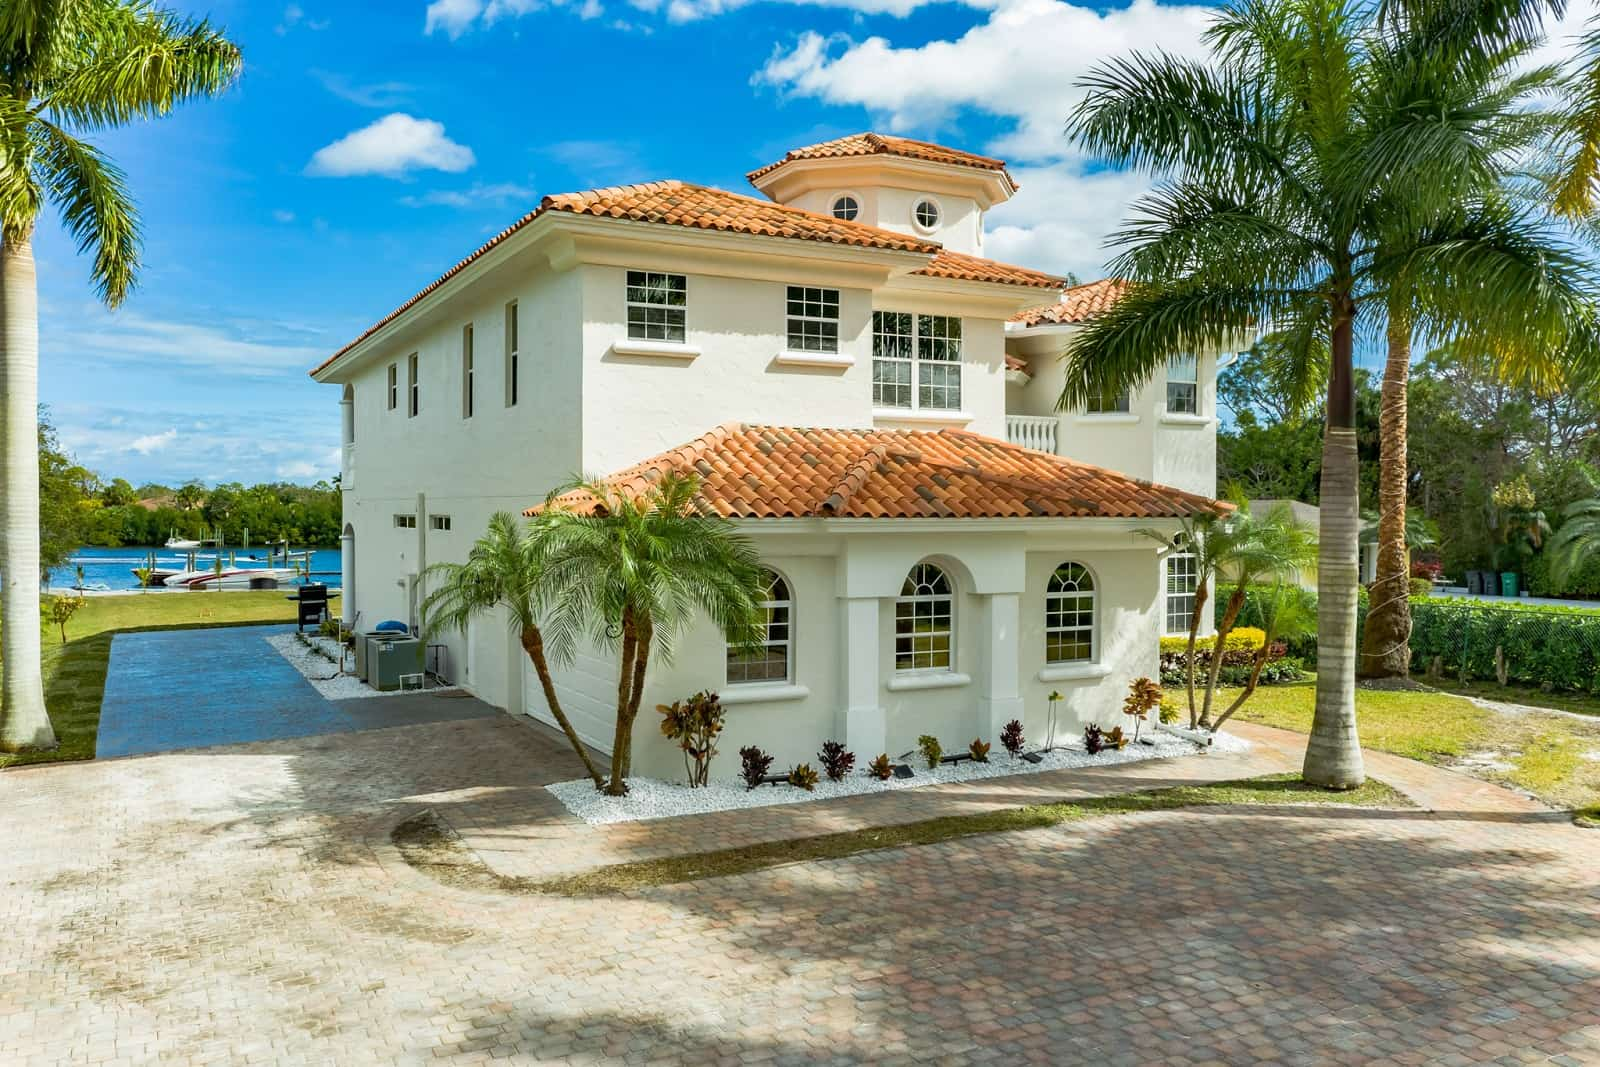 Real Estate Photography in Port St. Lucie - FL - USA - Front View